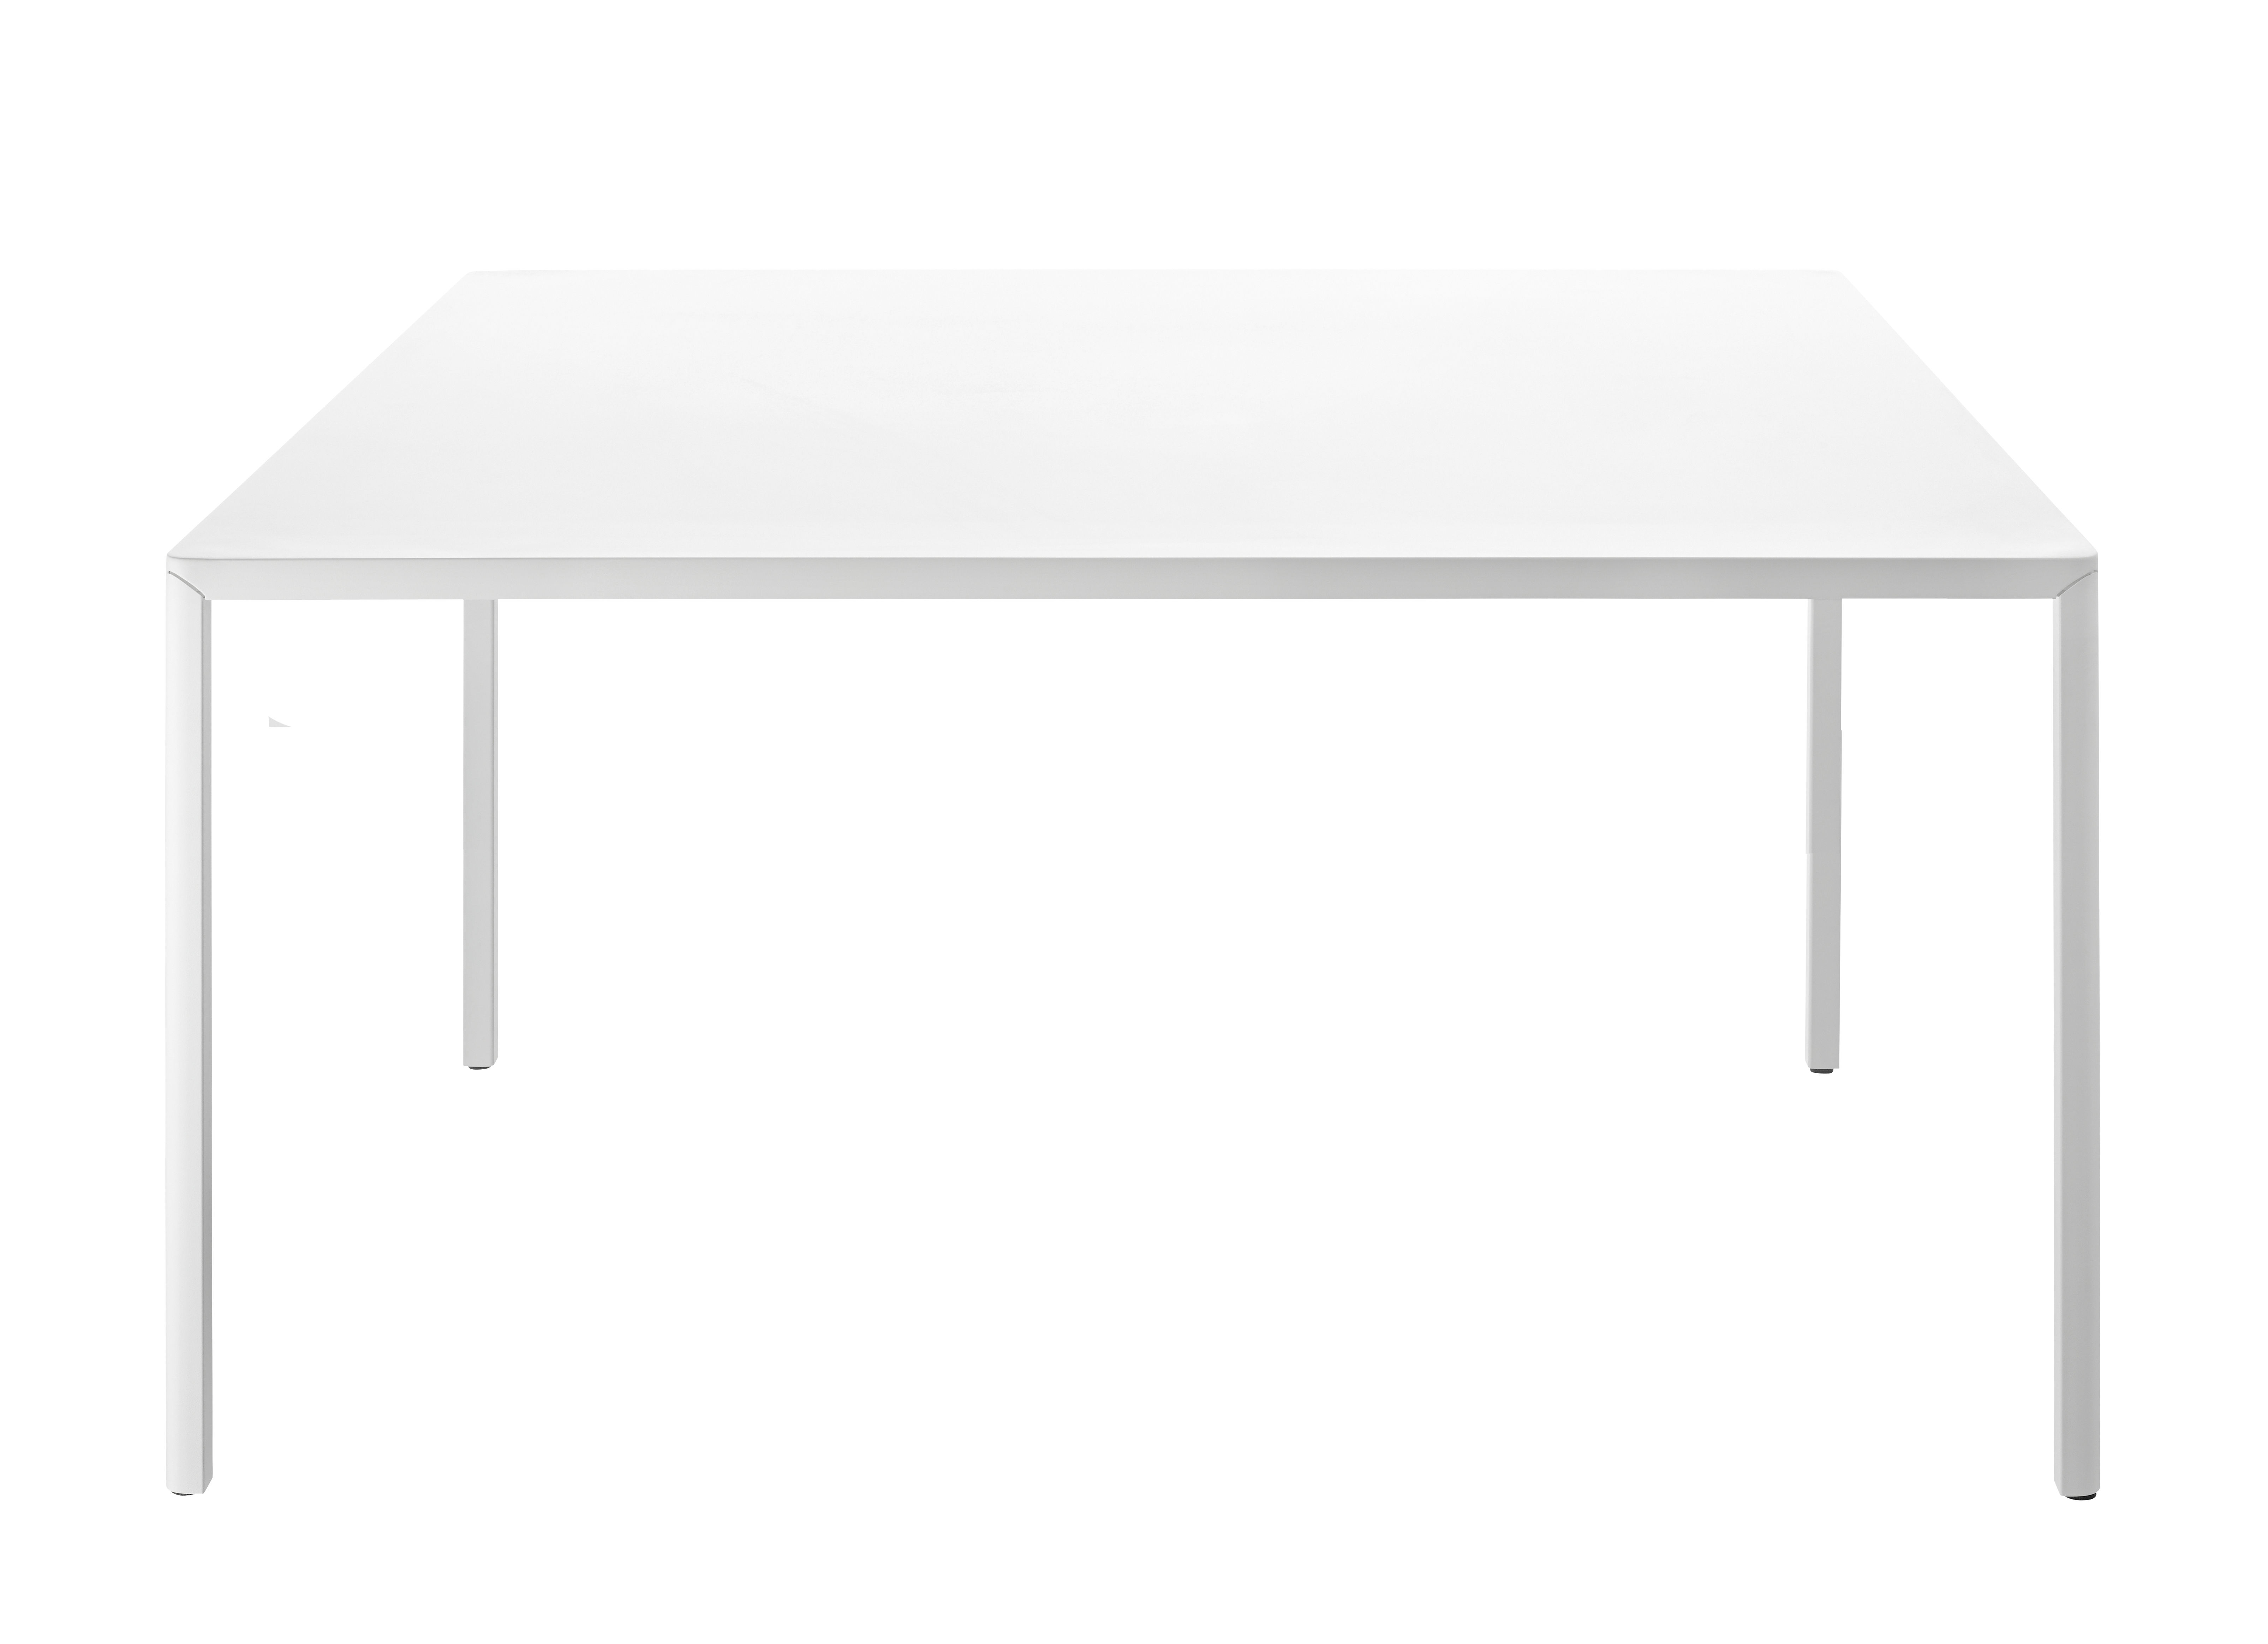 Passe partout outdoor table 180 x 90 cm white by magis for Table bar 85 cm